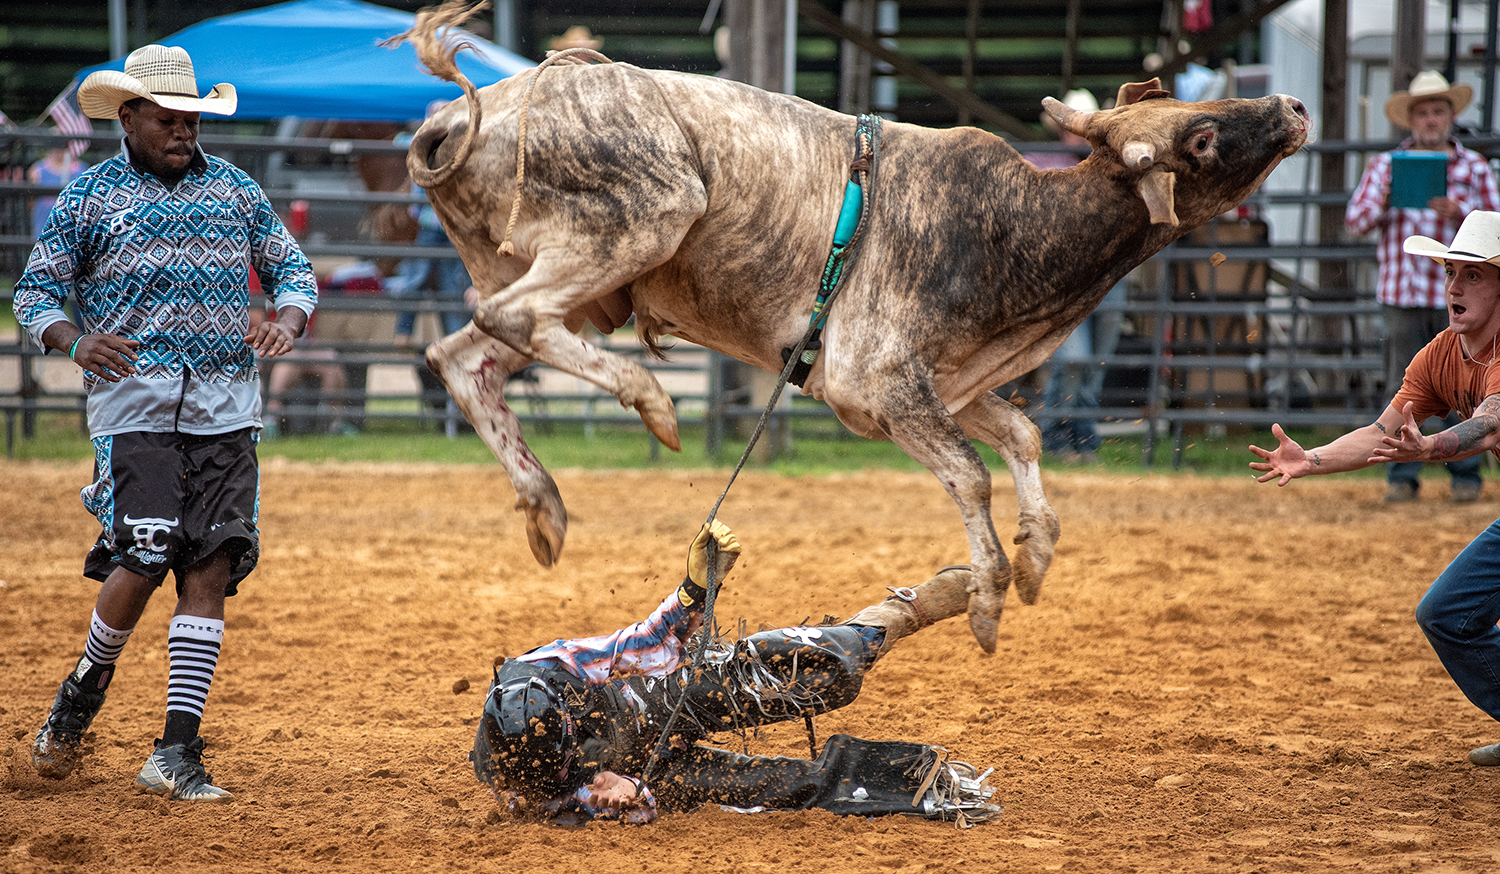 A bull throws its rider during the God and Country Rodeo held at Hayseed Cowboy Church in Thaxton, Mississippi, on July 4. Timothy Ivy/Getty Images